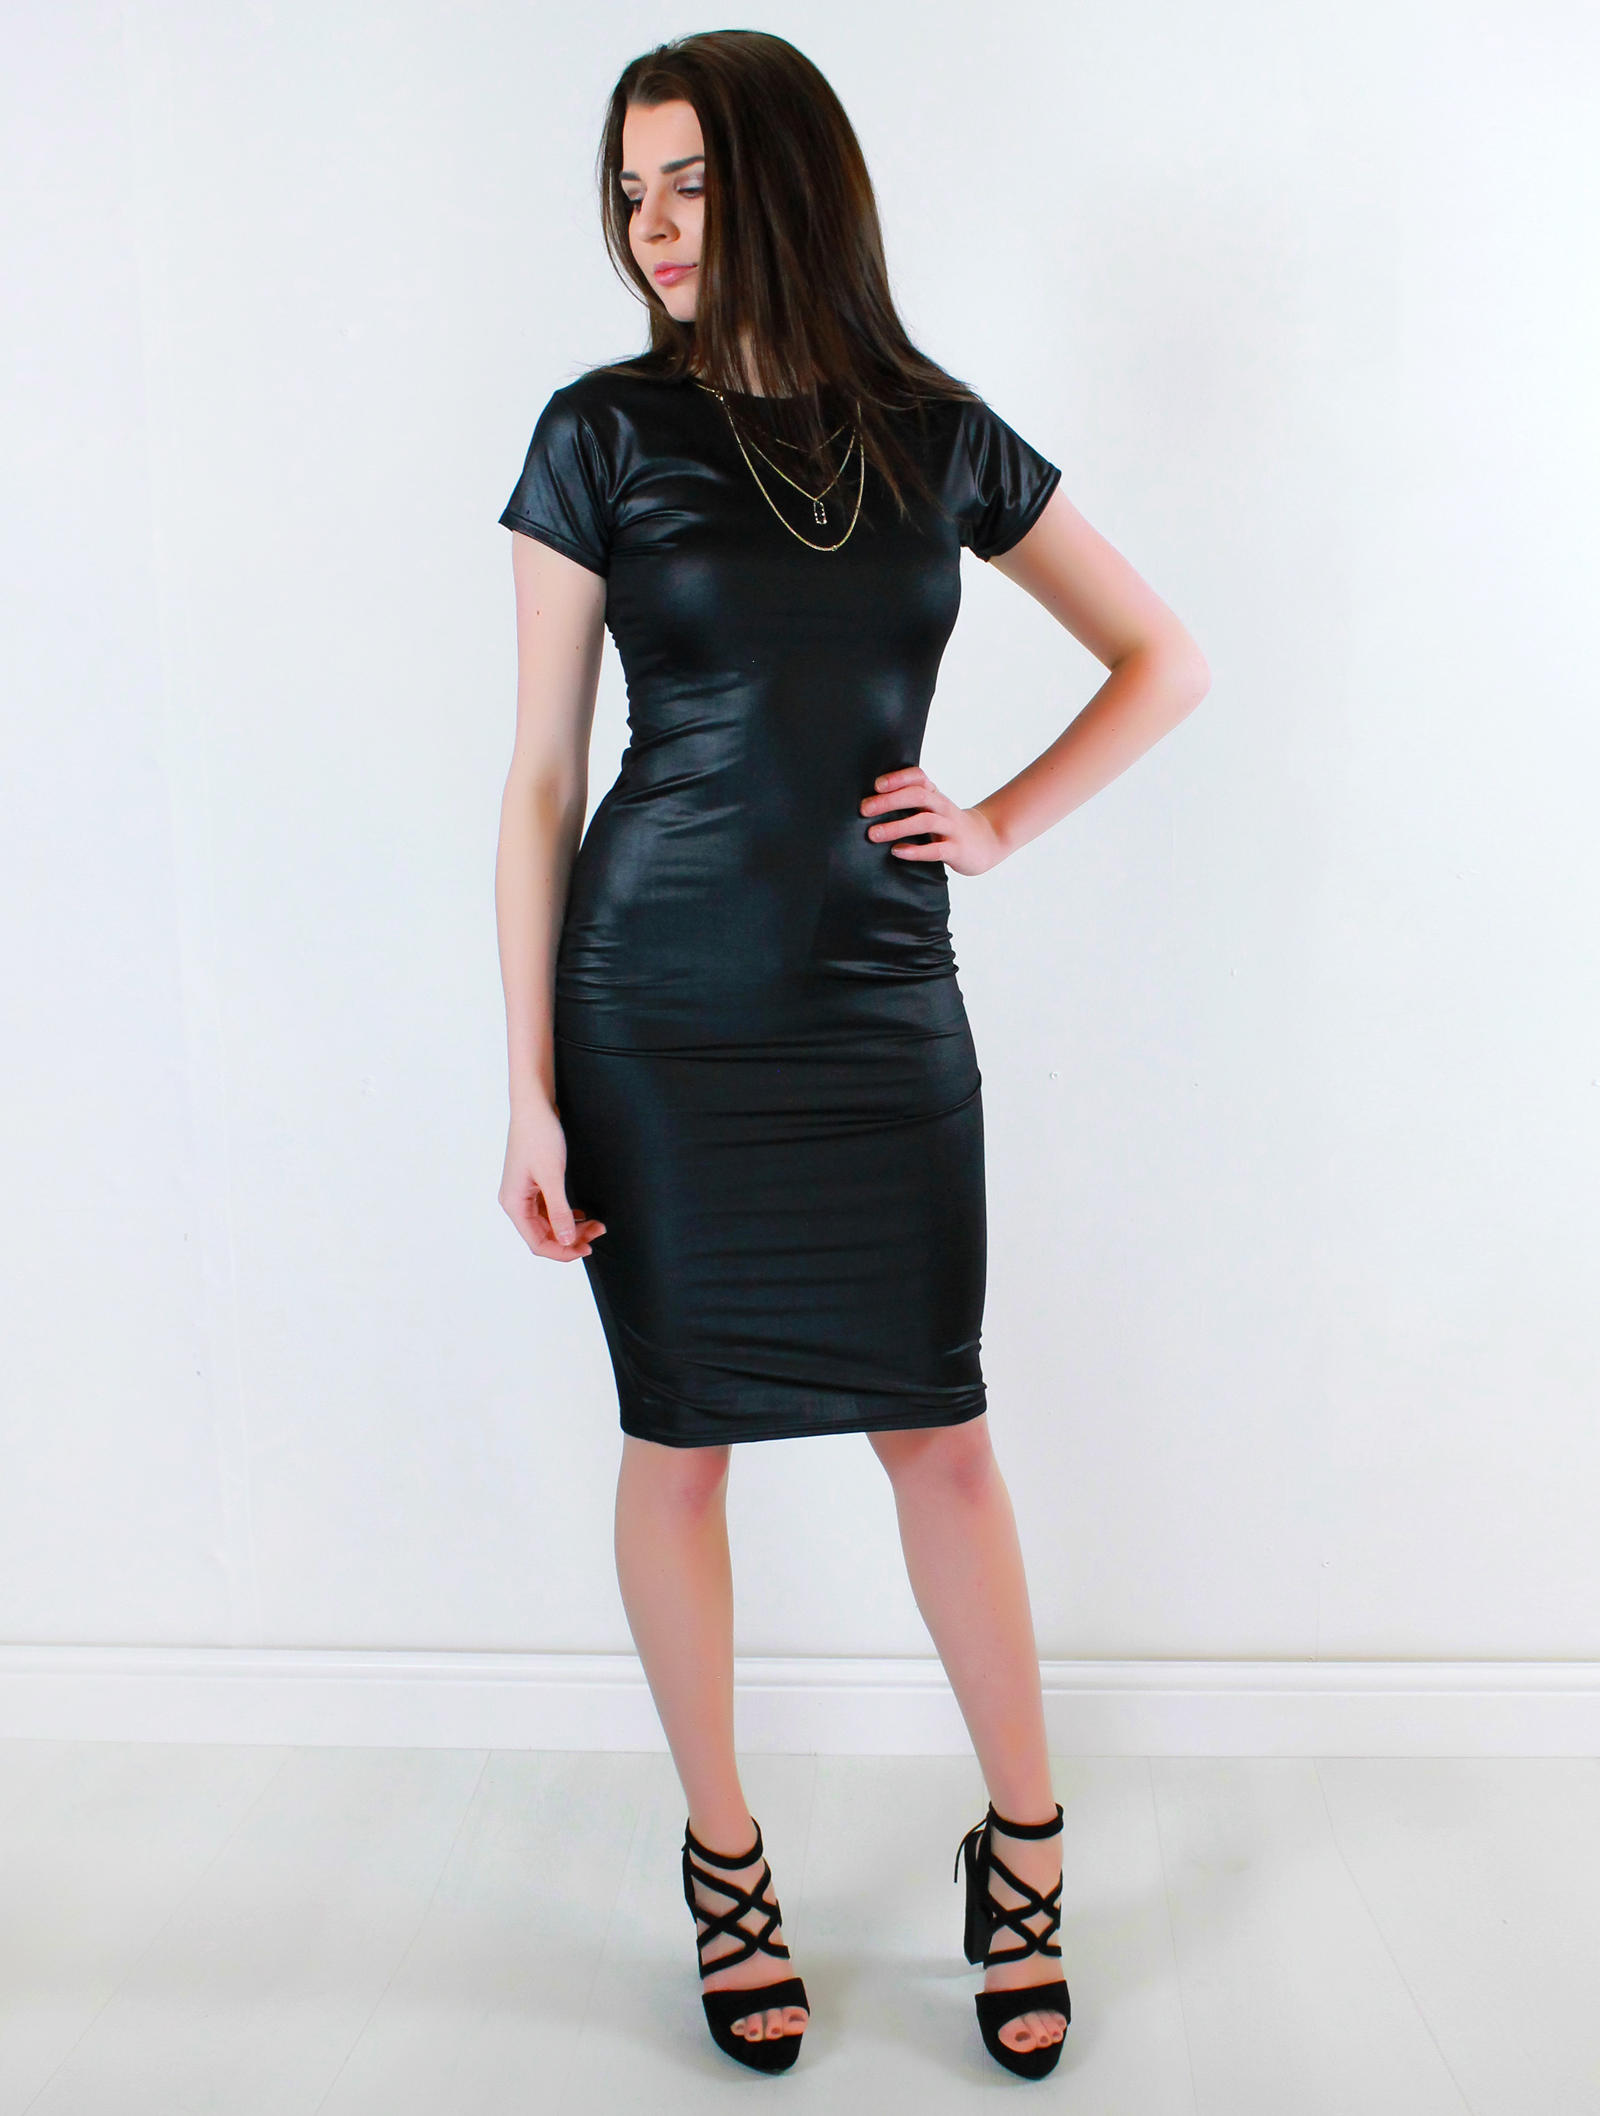 Wetlook dresses uk cheap